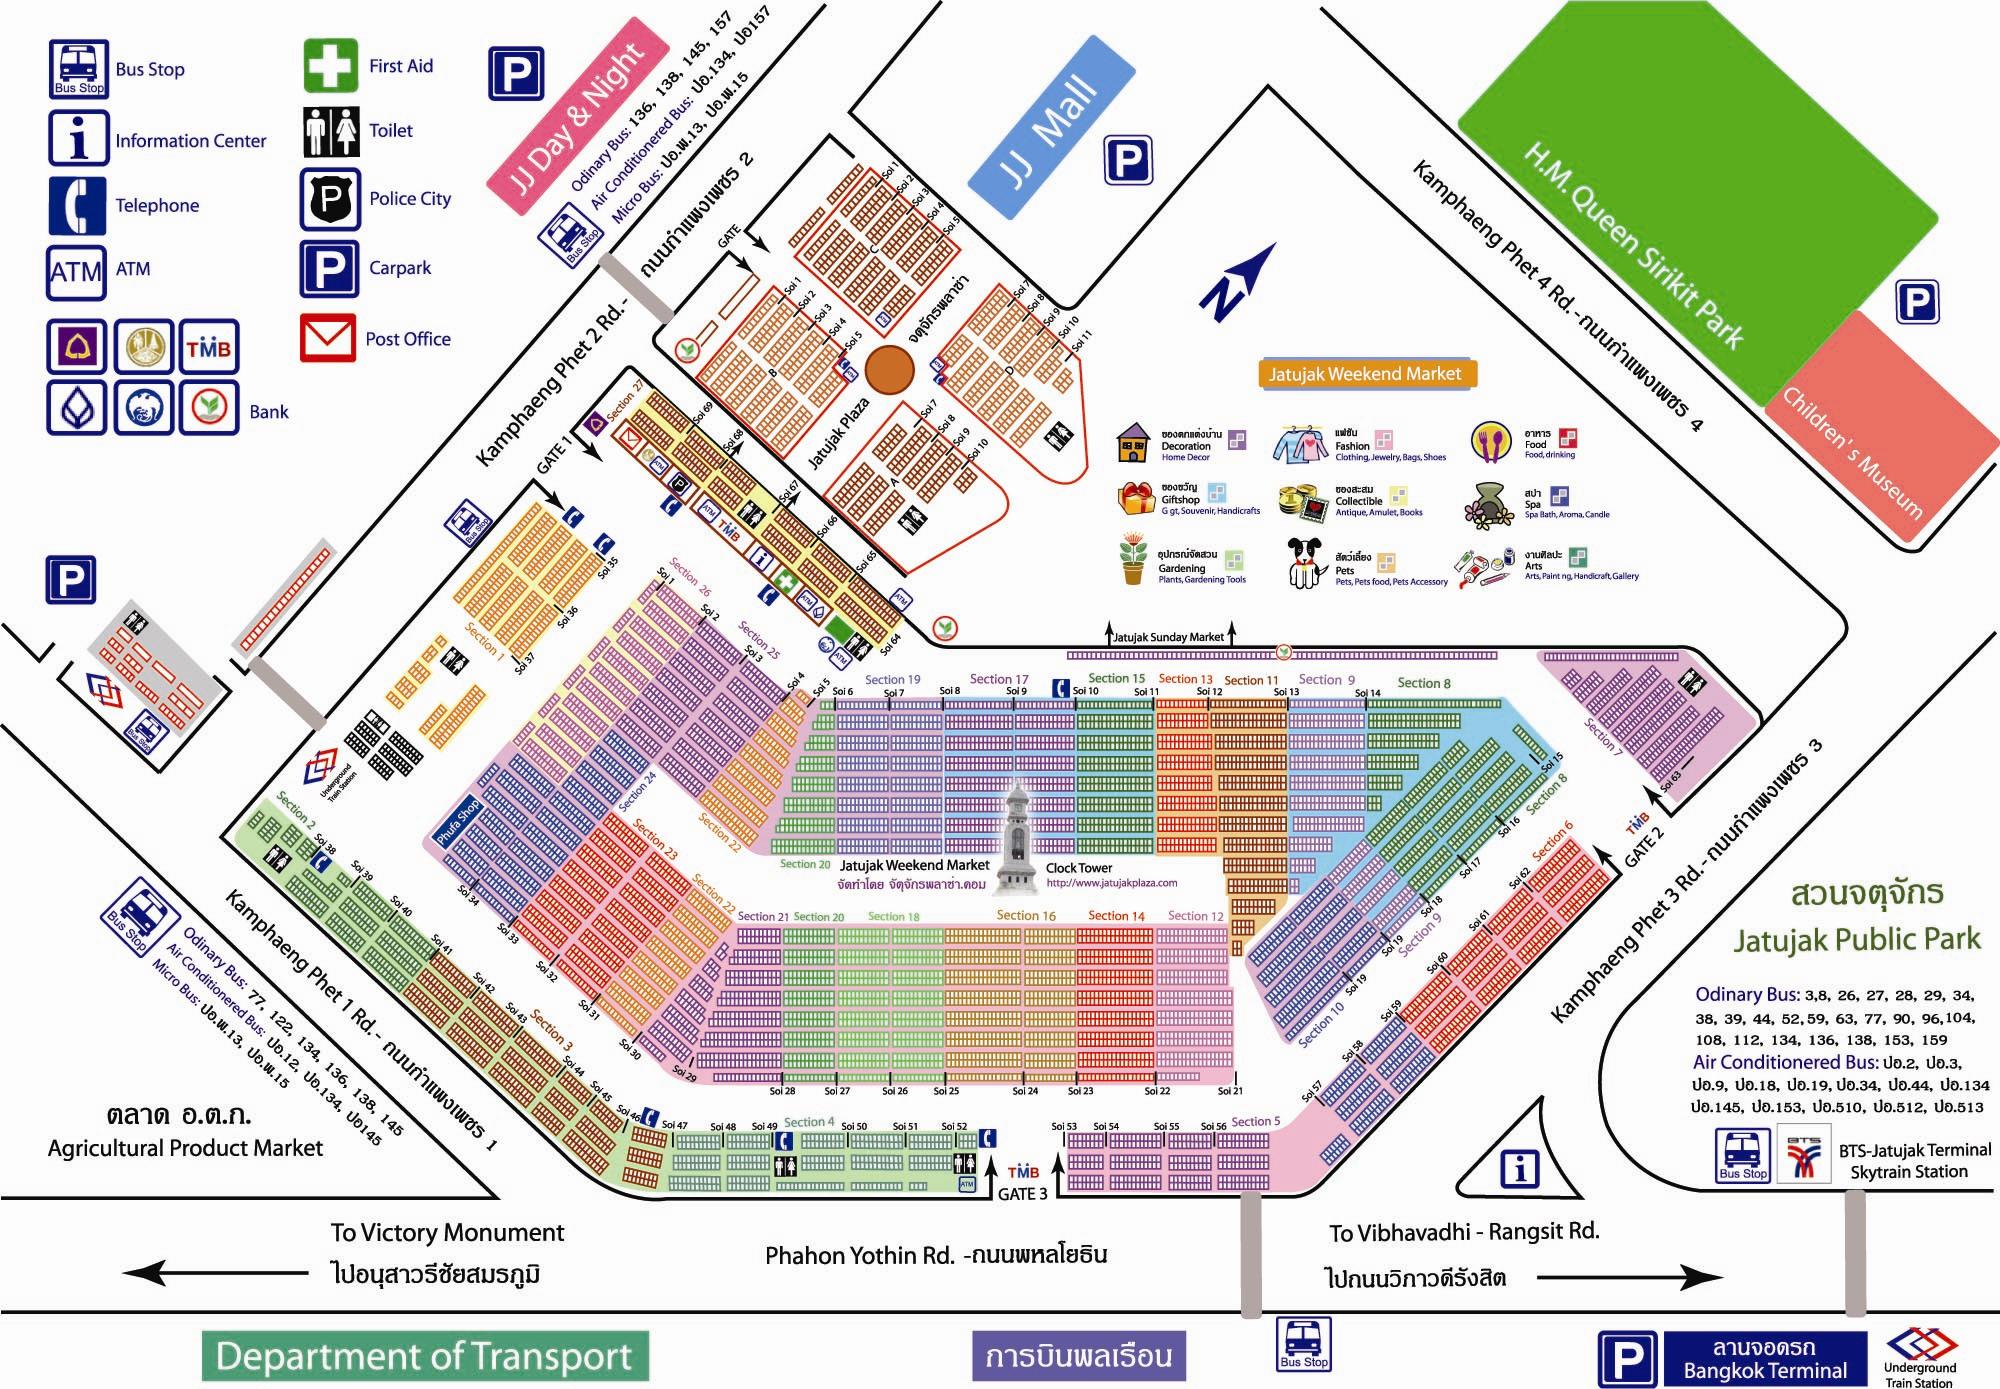 Chatuchak Market layout